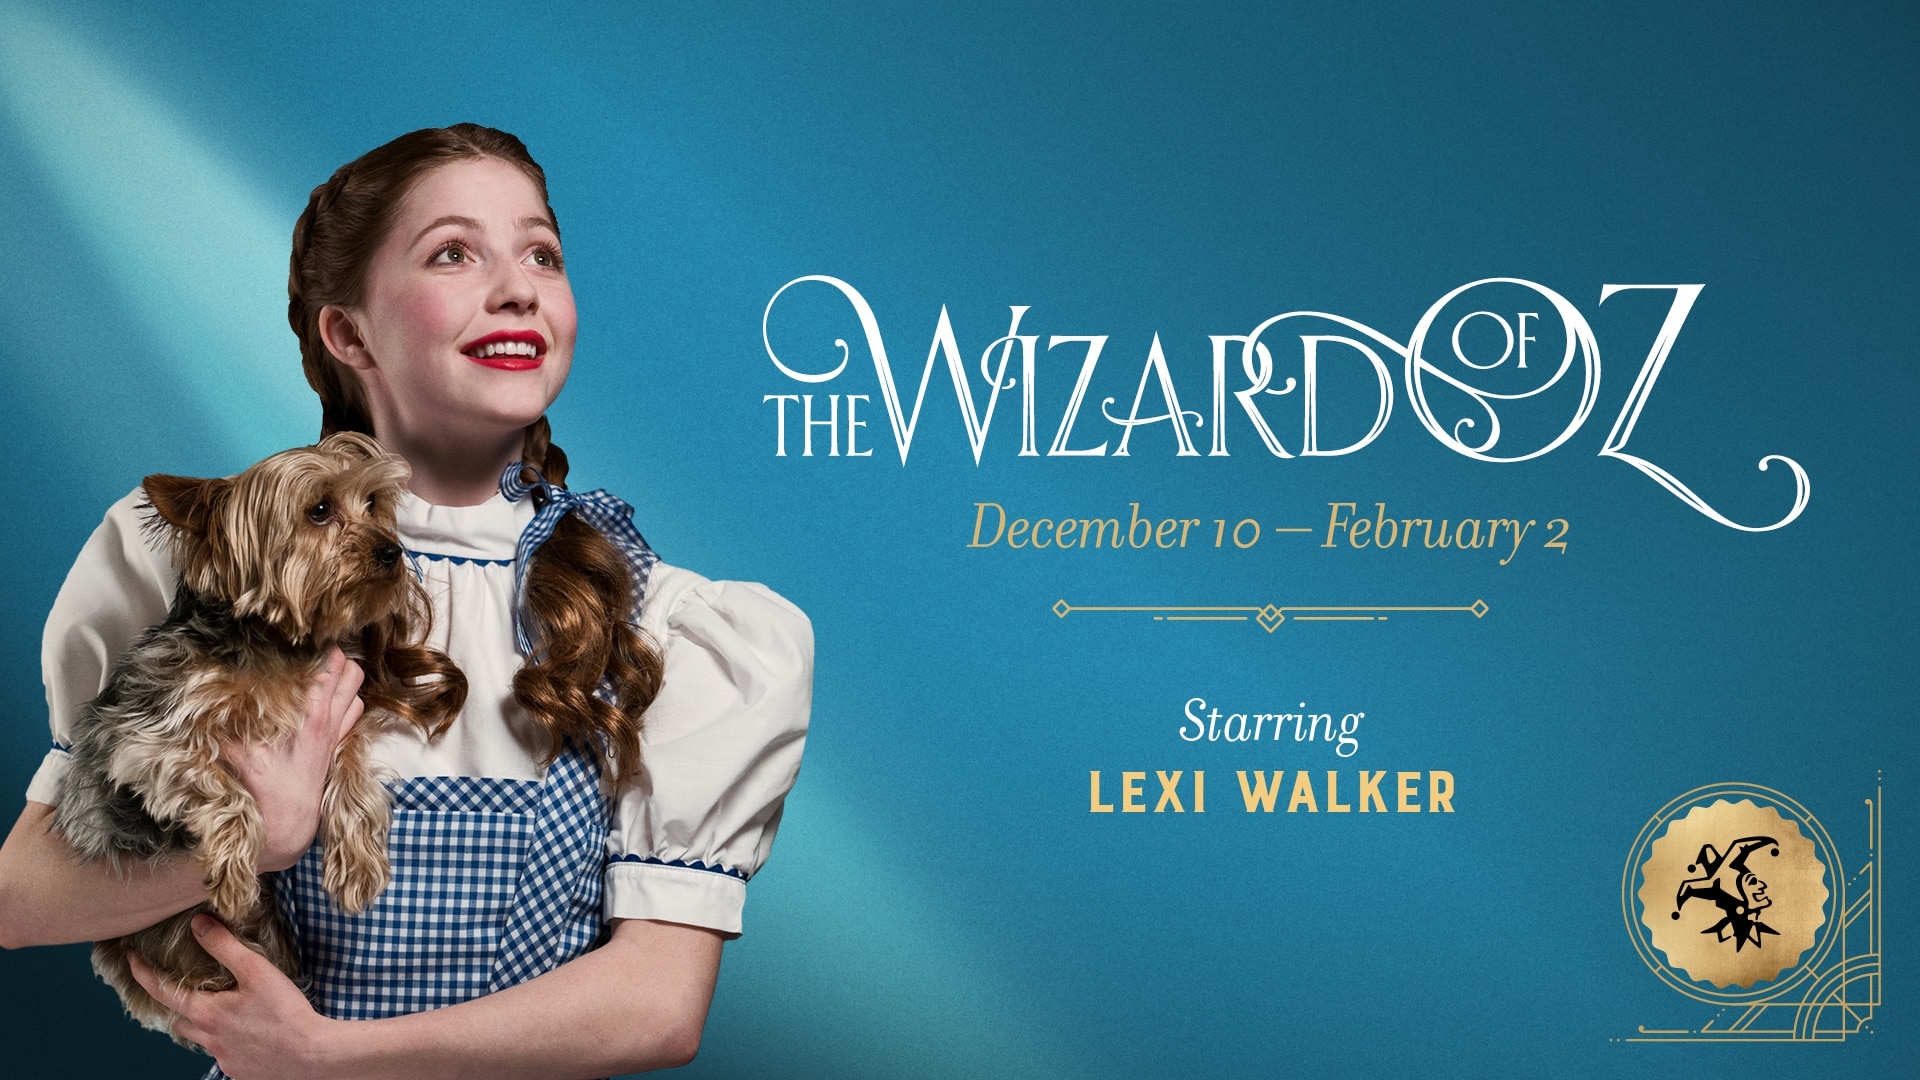 Lexi Walker in The Wizard of Oz